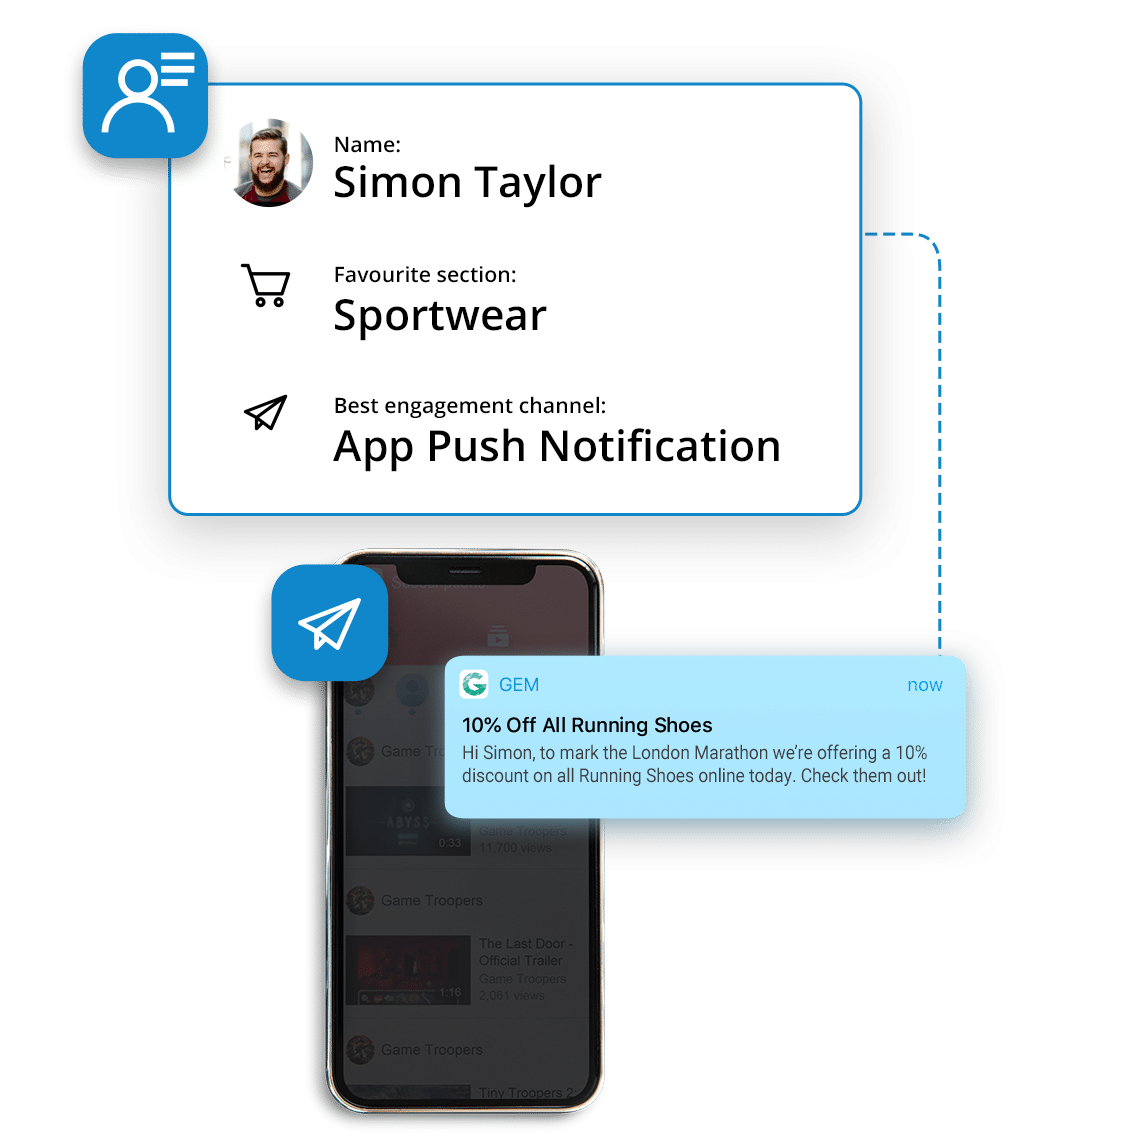 An example of a personalised and relevant app push notification